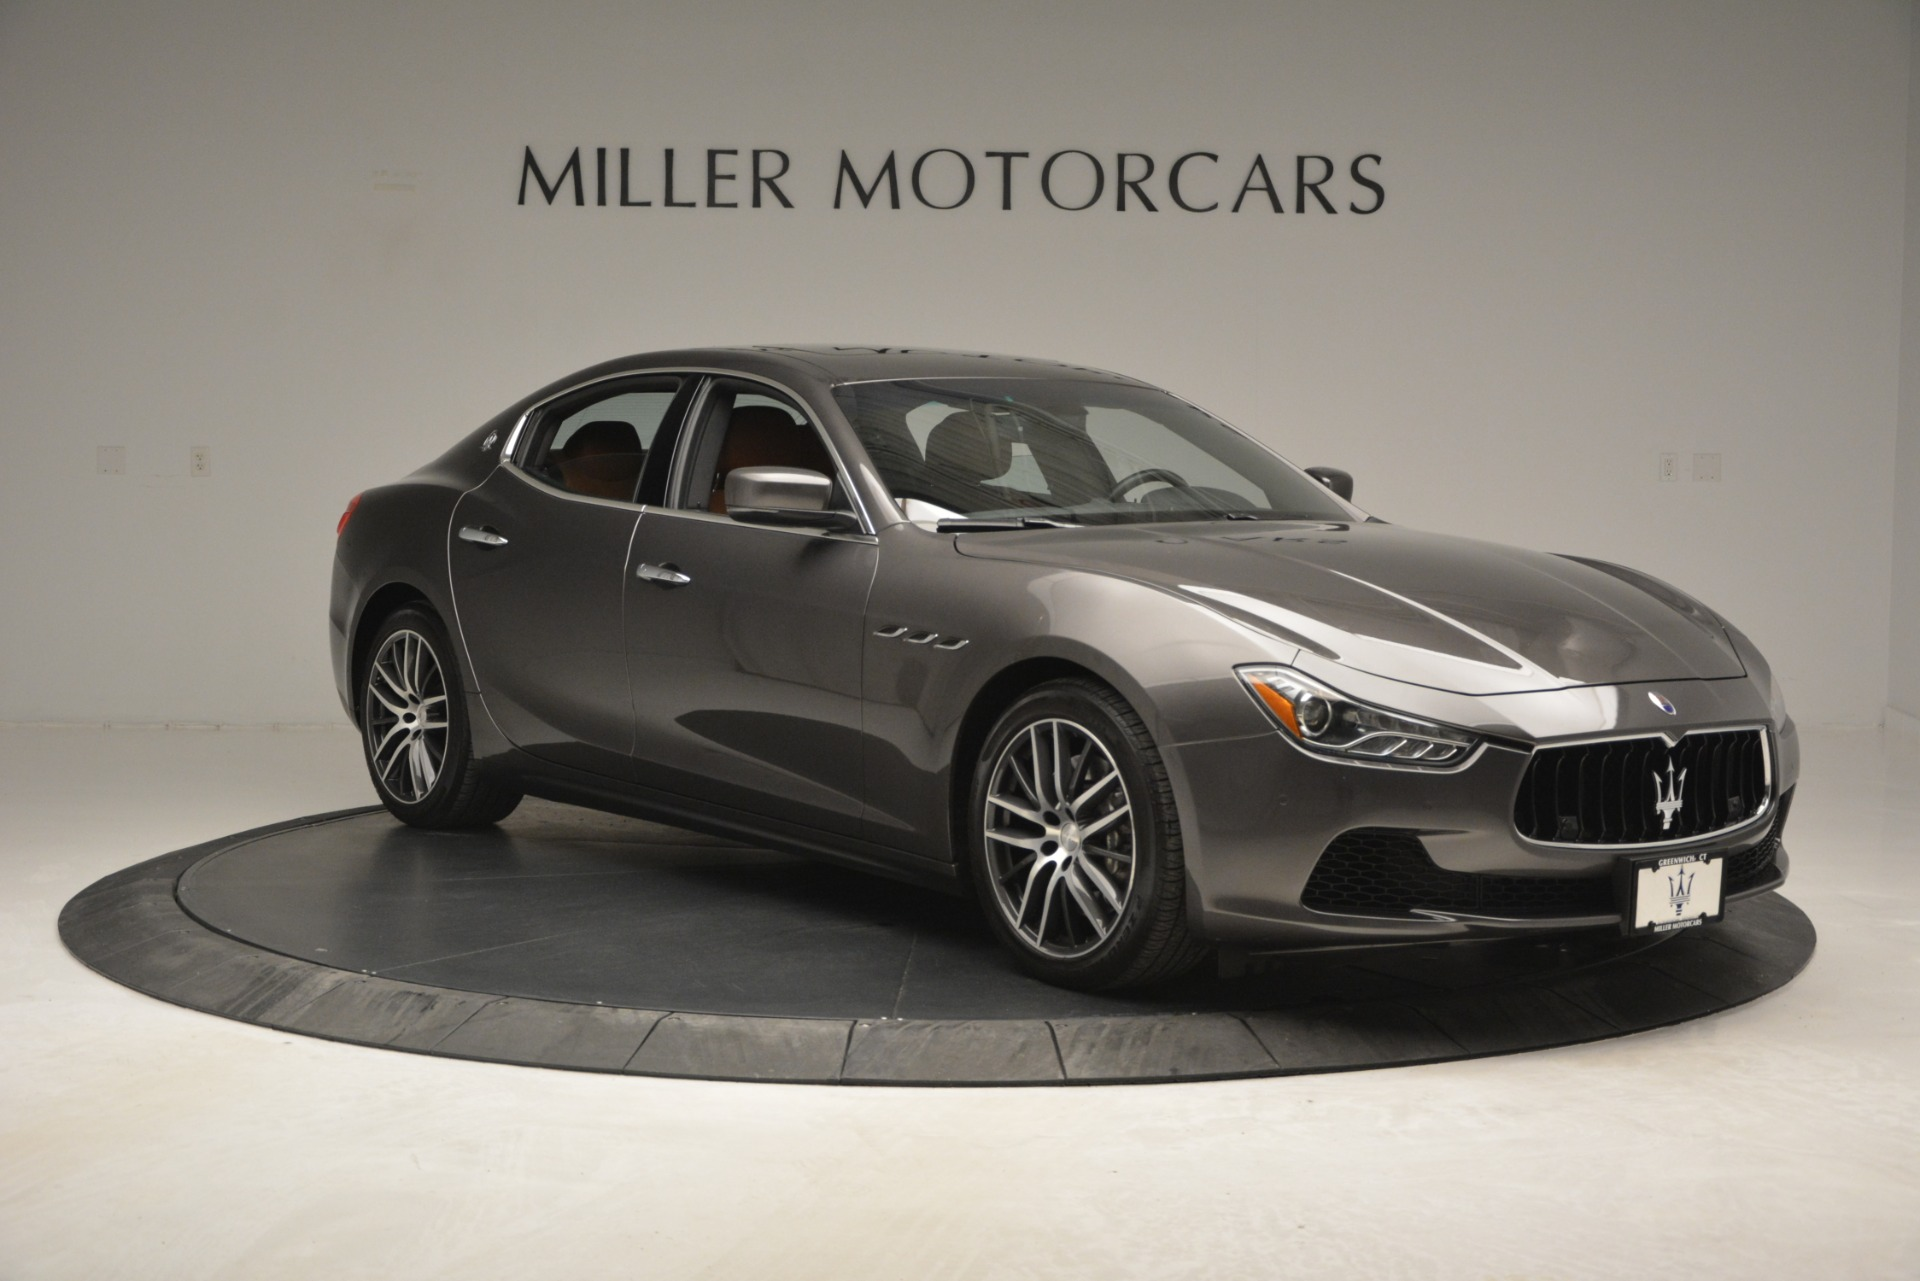 Used 2015 Maserati Ghibli S Q4 For Sale In Greenwich, CT 2941_p12